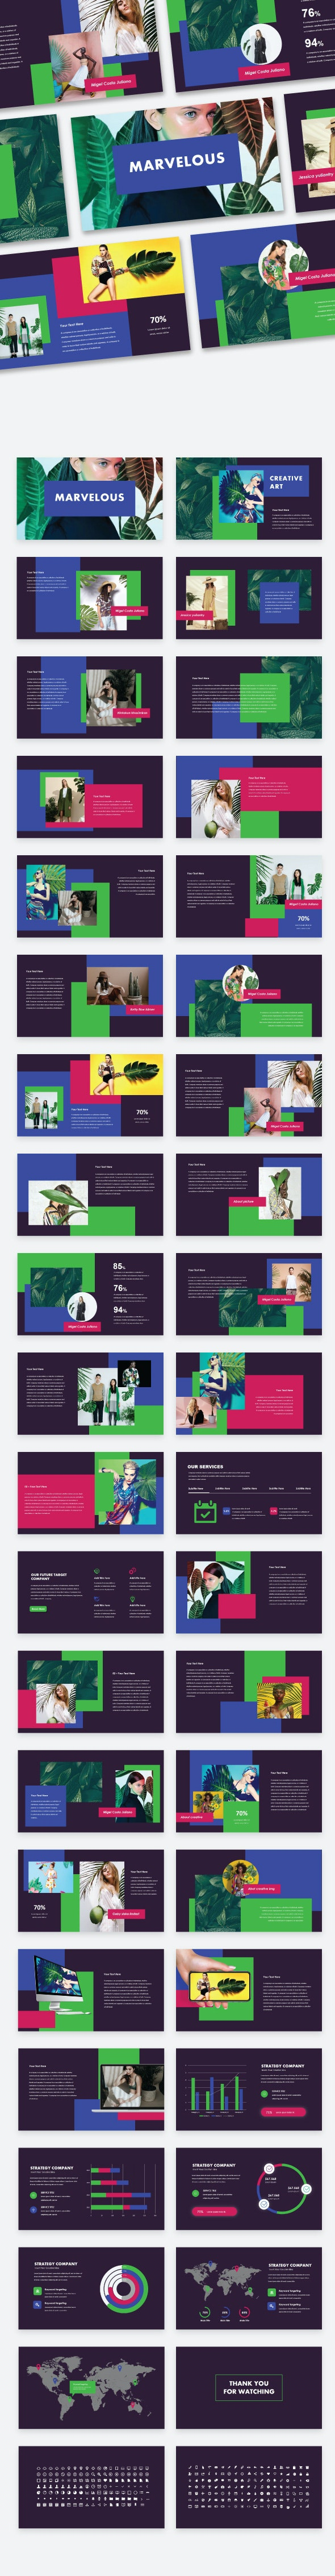 Marvelous - Creative & Colorfull PowerPoint Template - Abstract PowerPoint Templates